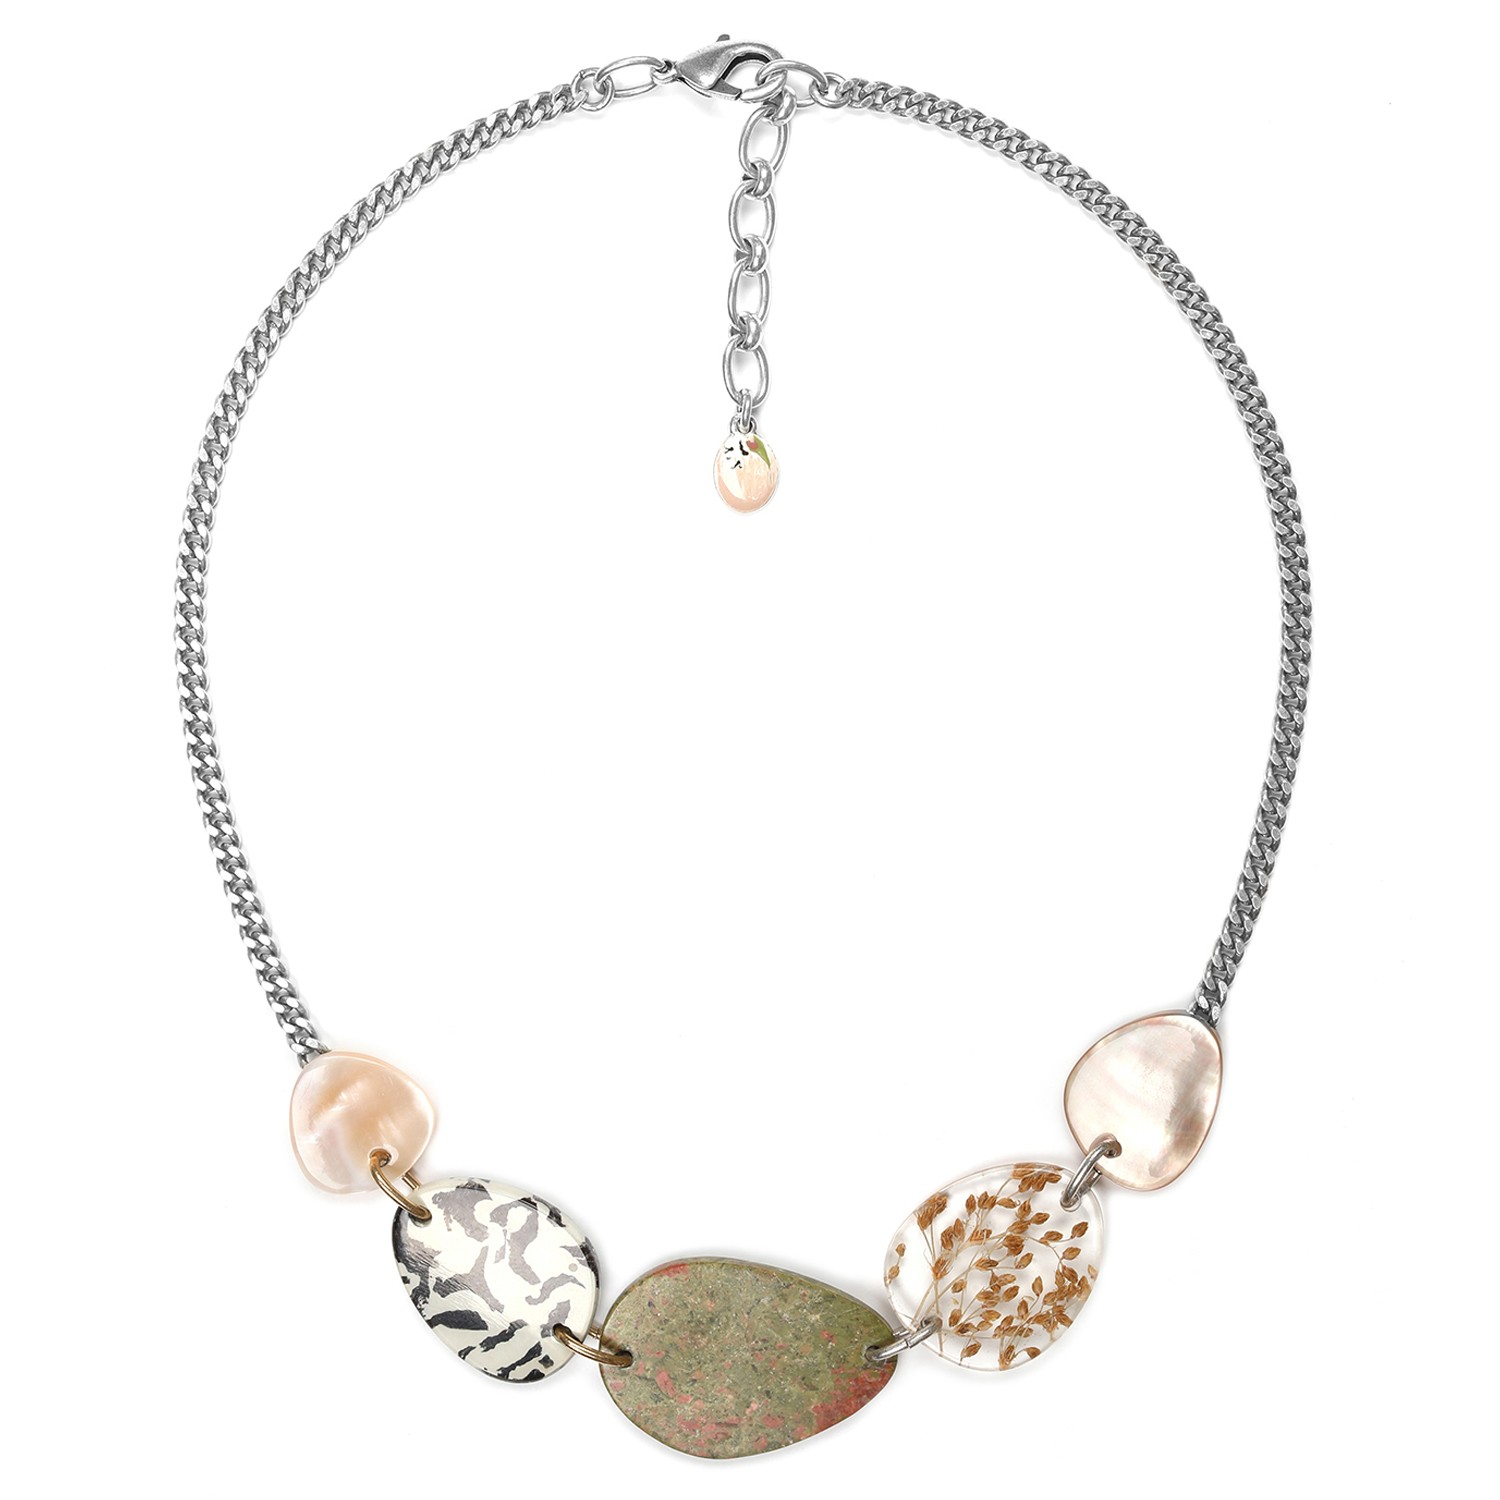 NATURALISTE 5 elements necklace